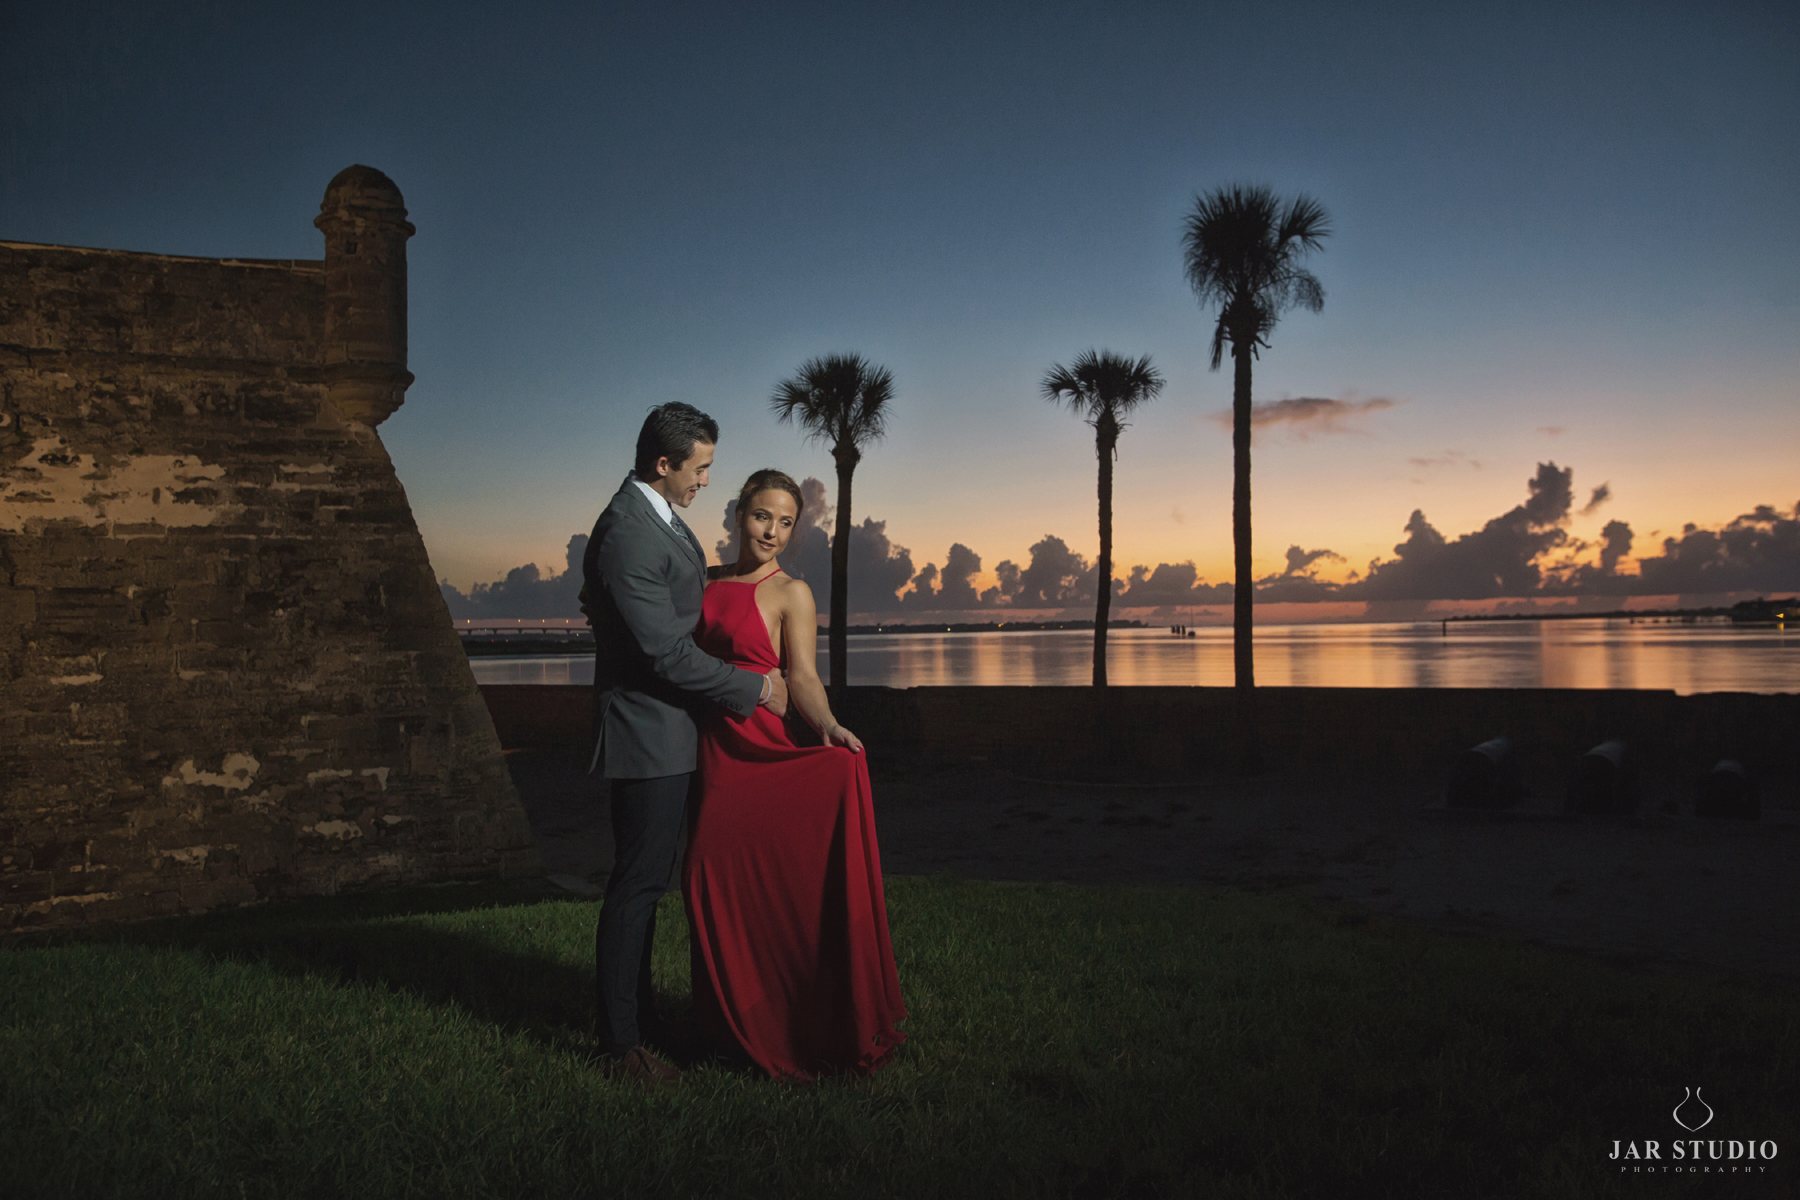 JARSTUDIO-engagement-photographer-orlando-fl-1818 (26).JPG